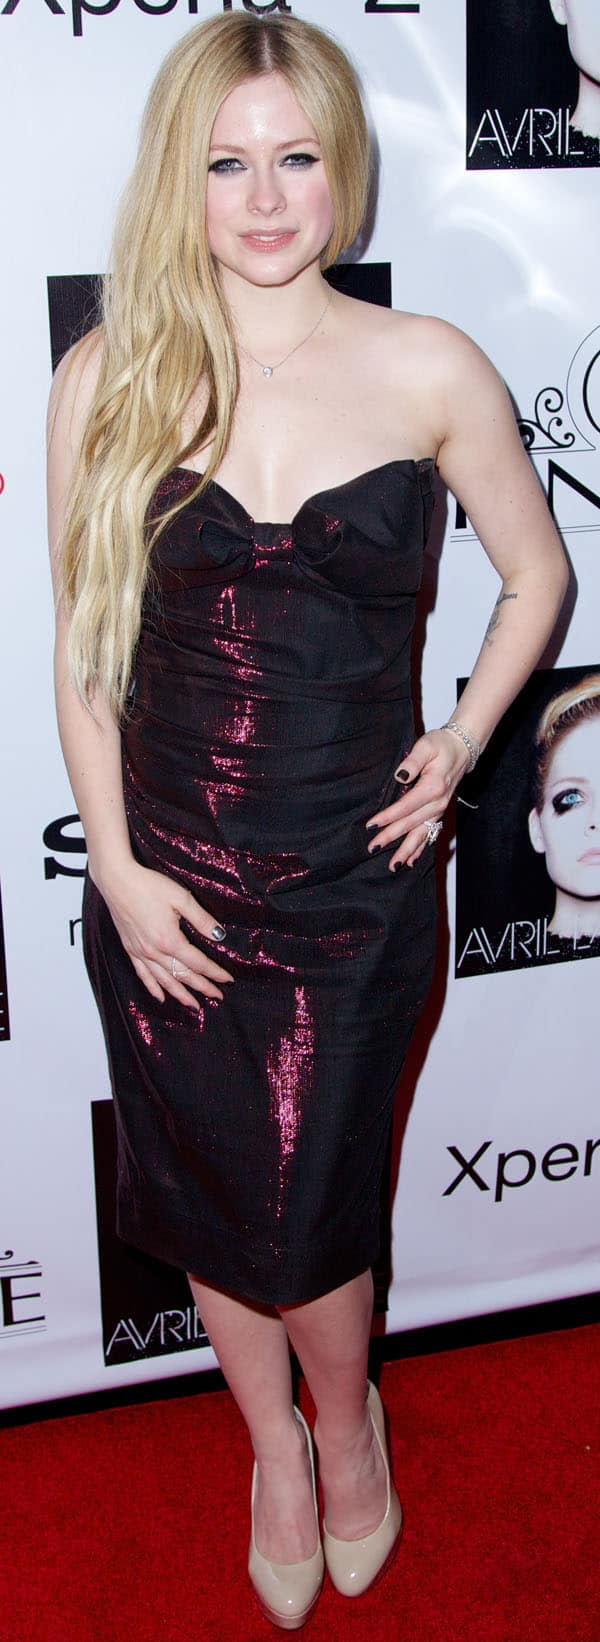 Avril Lavigne wearing a dress by Vivienne Westwood Red Label